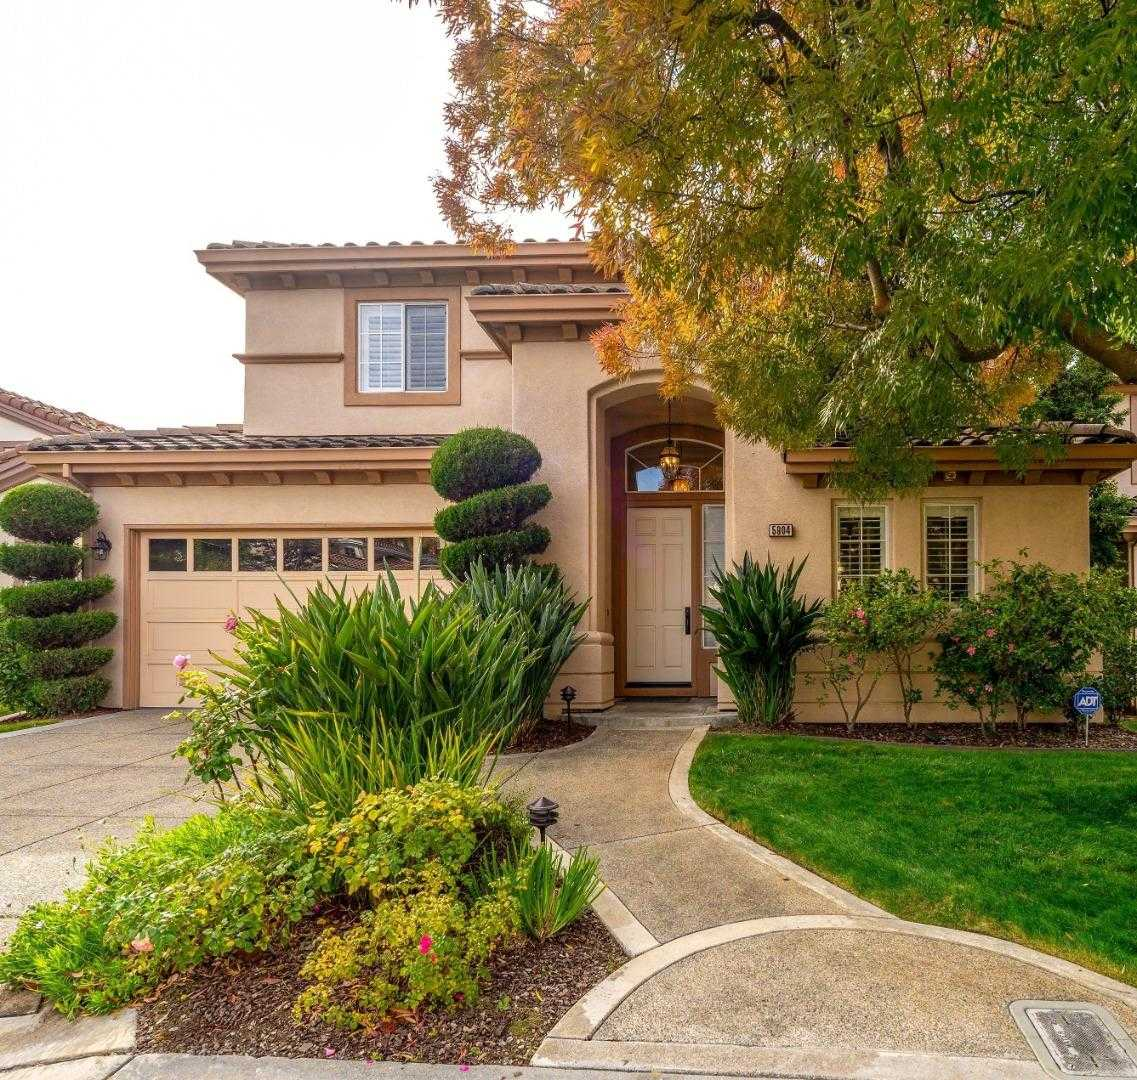 $1,678,000 - 4Br/3Ba -  for Sale in San Jose